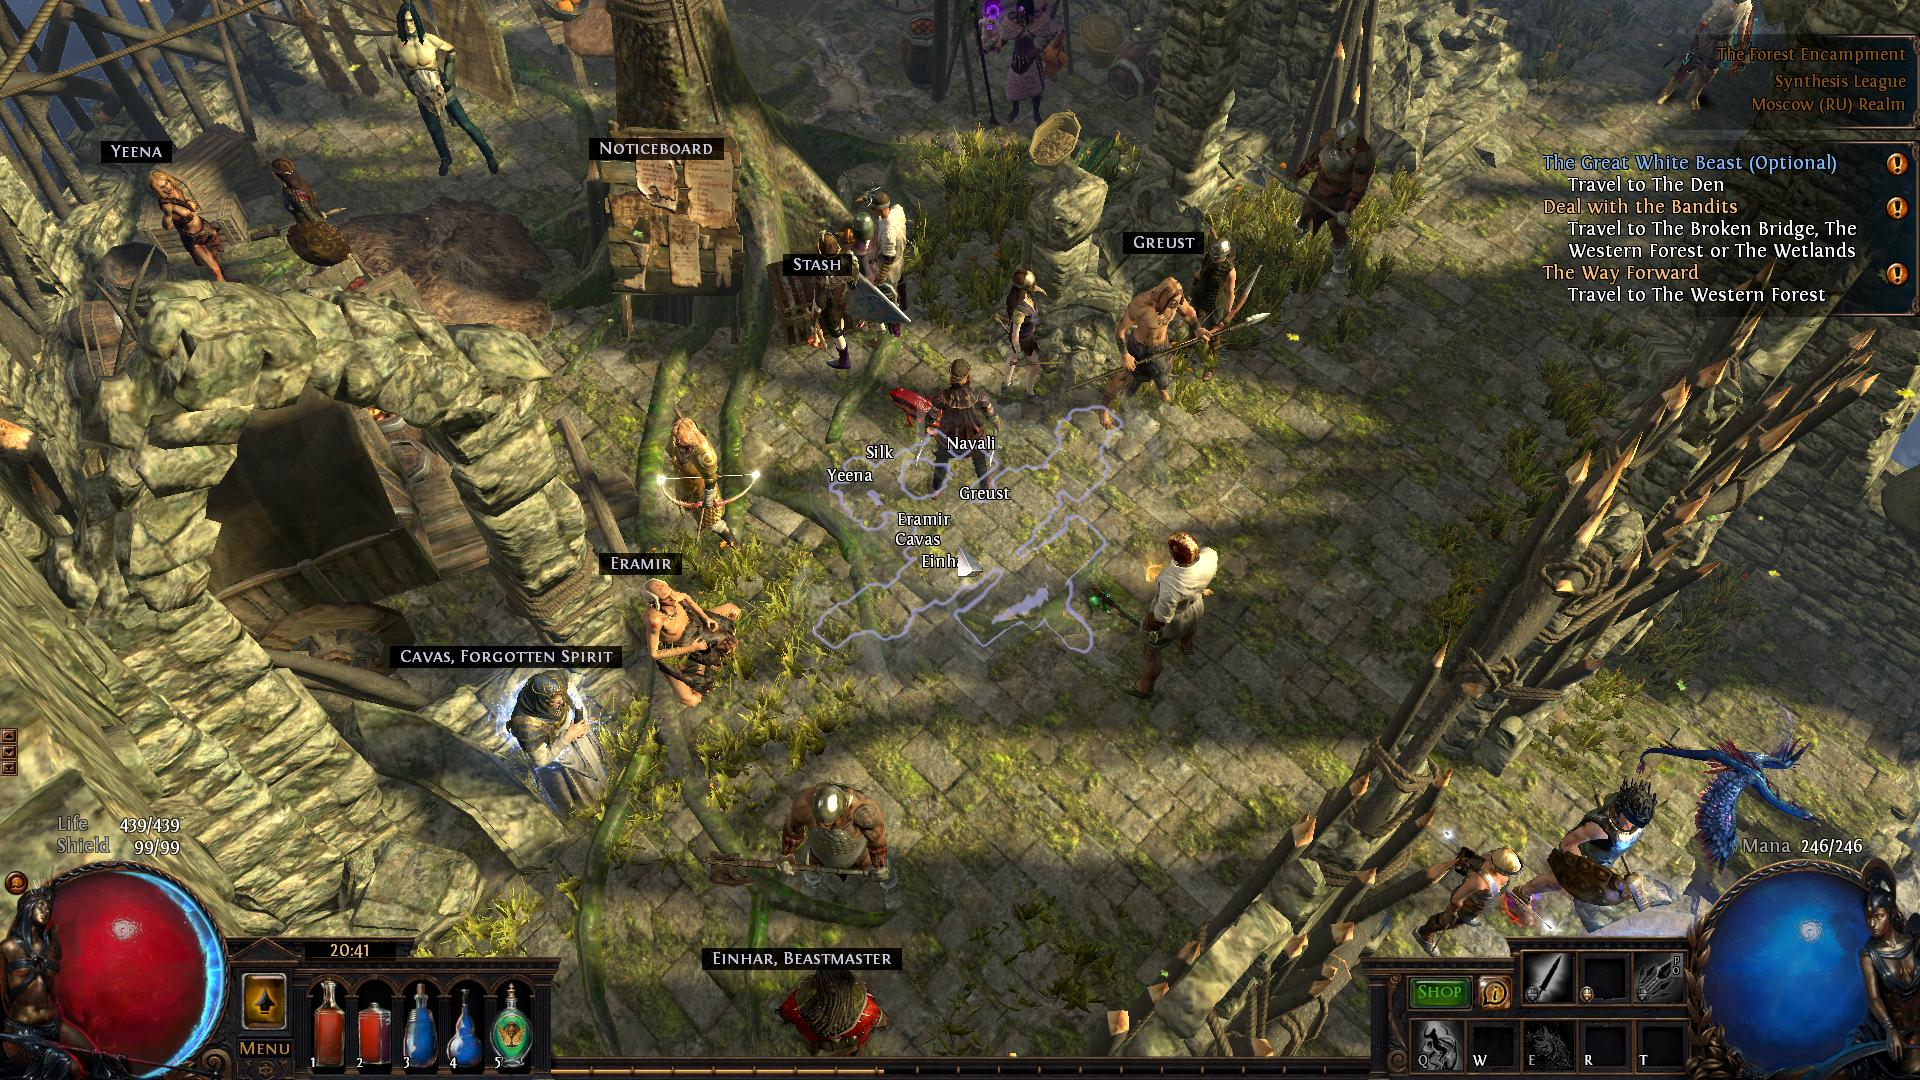 Path of Exile not opening - Support - Lutris Forums